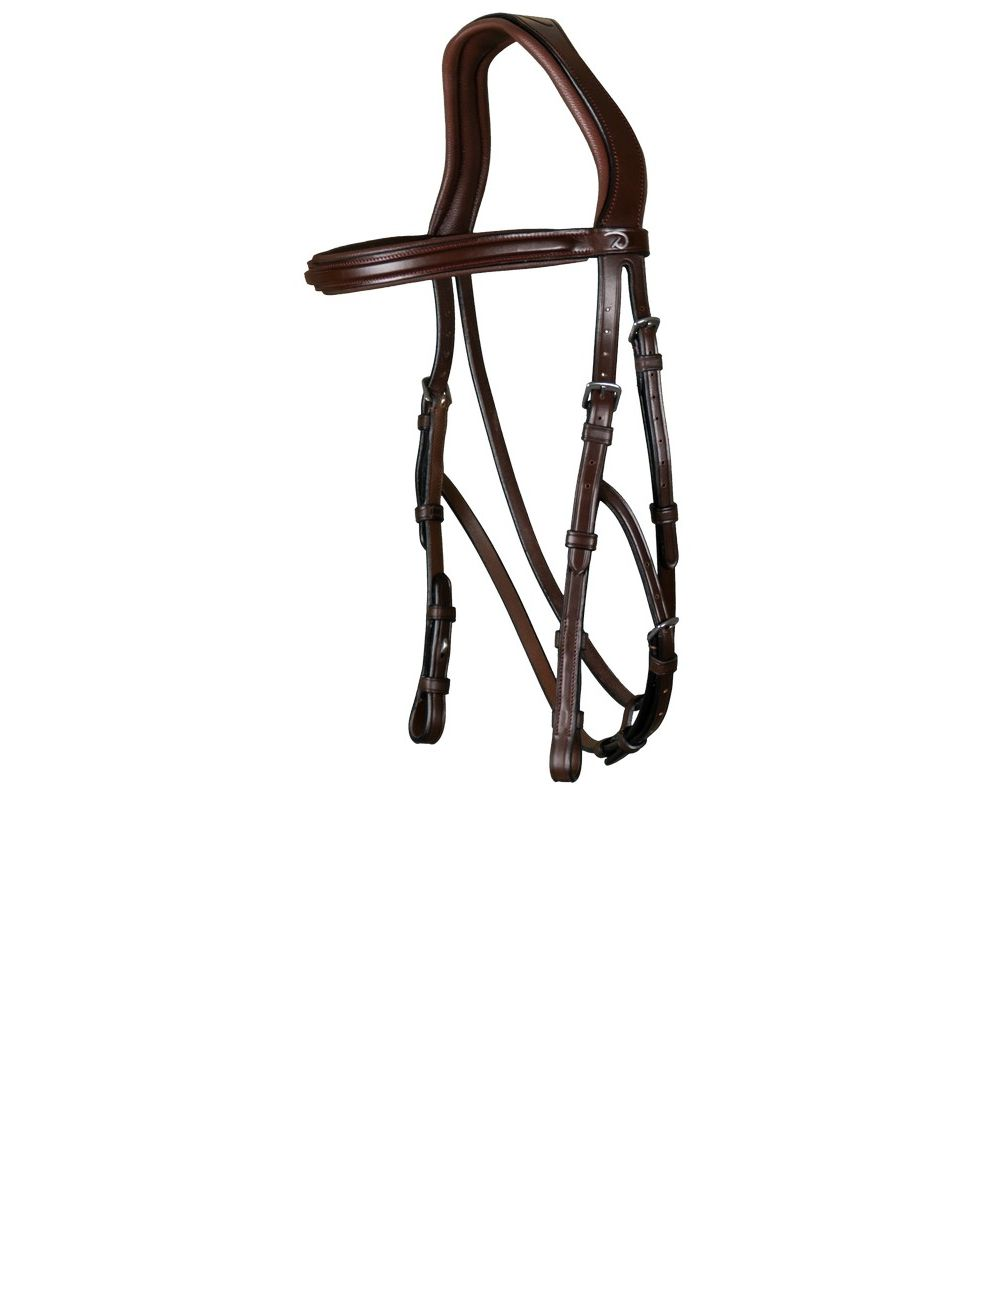 Dyon New English Collection Hackamore hoofdstel - 1